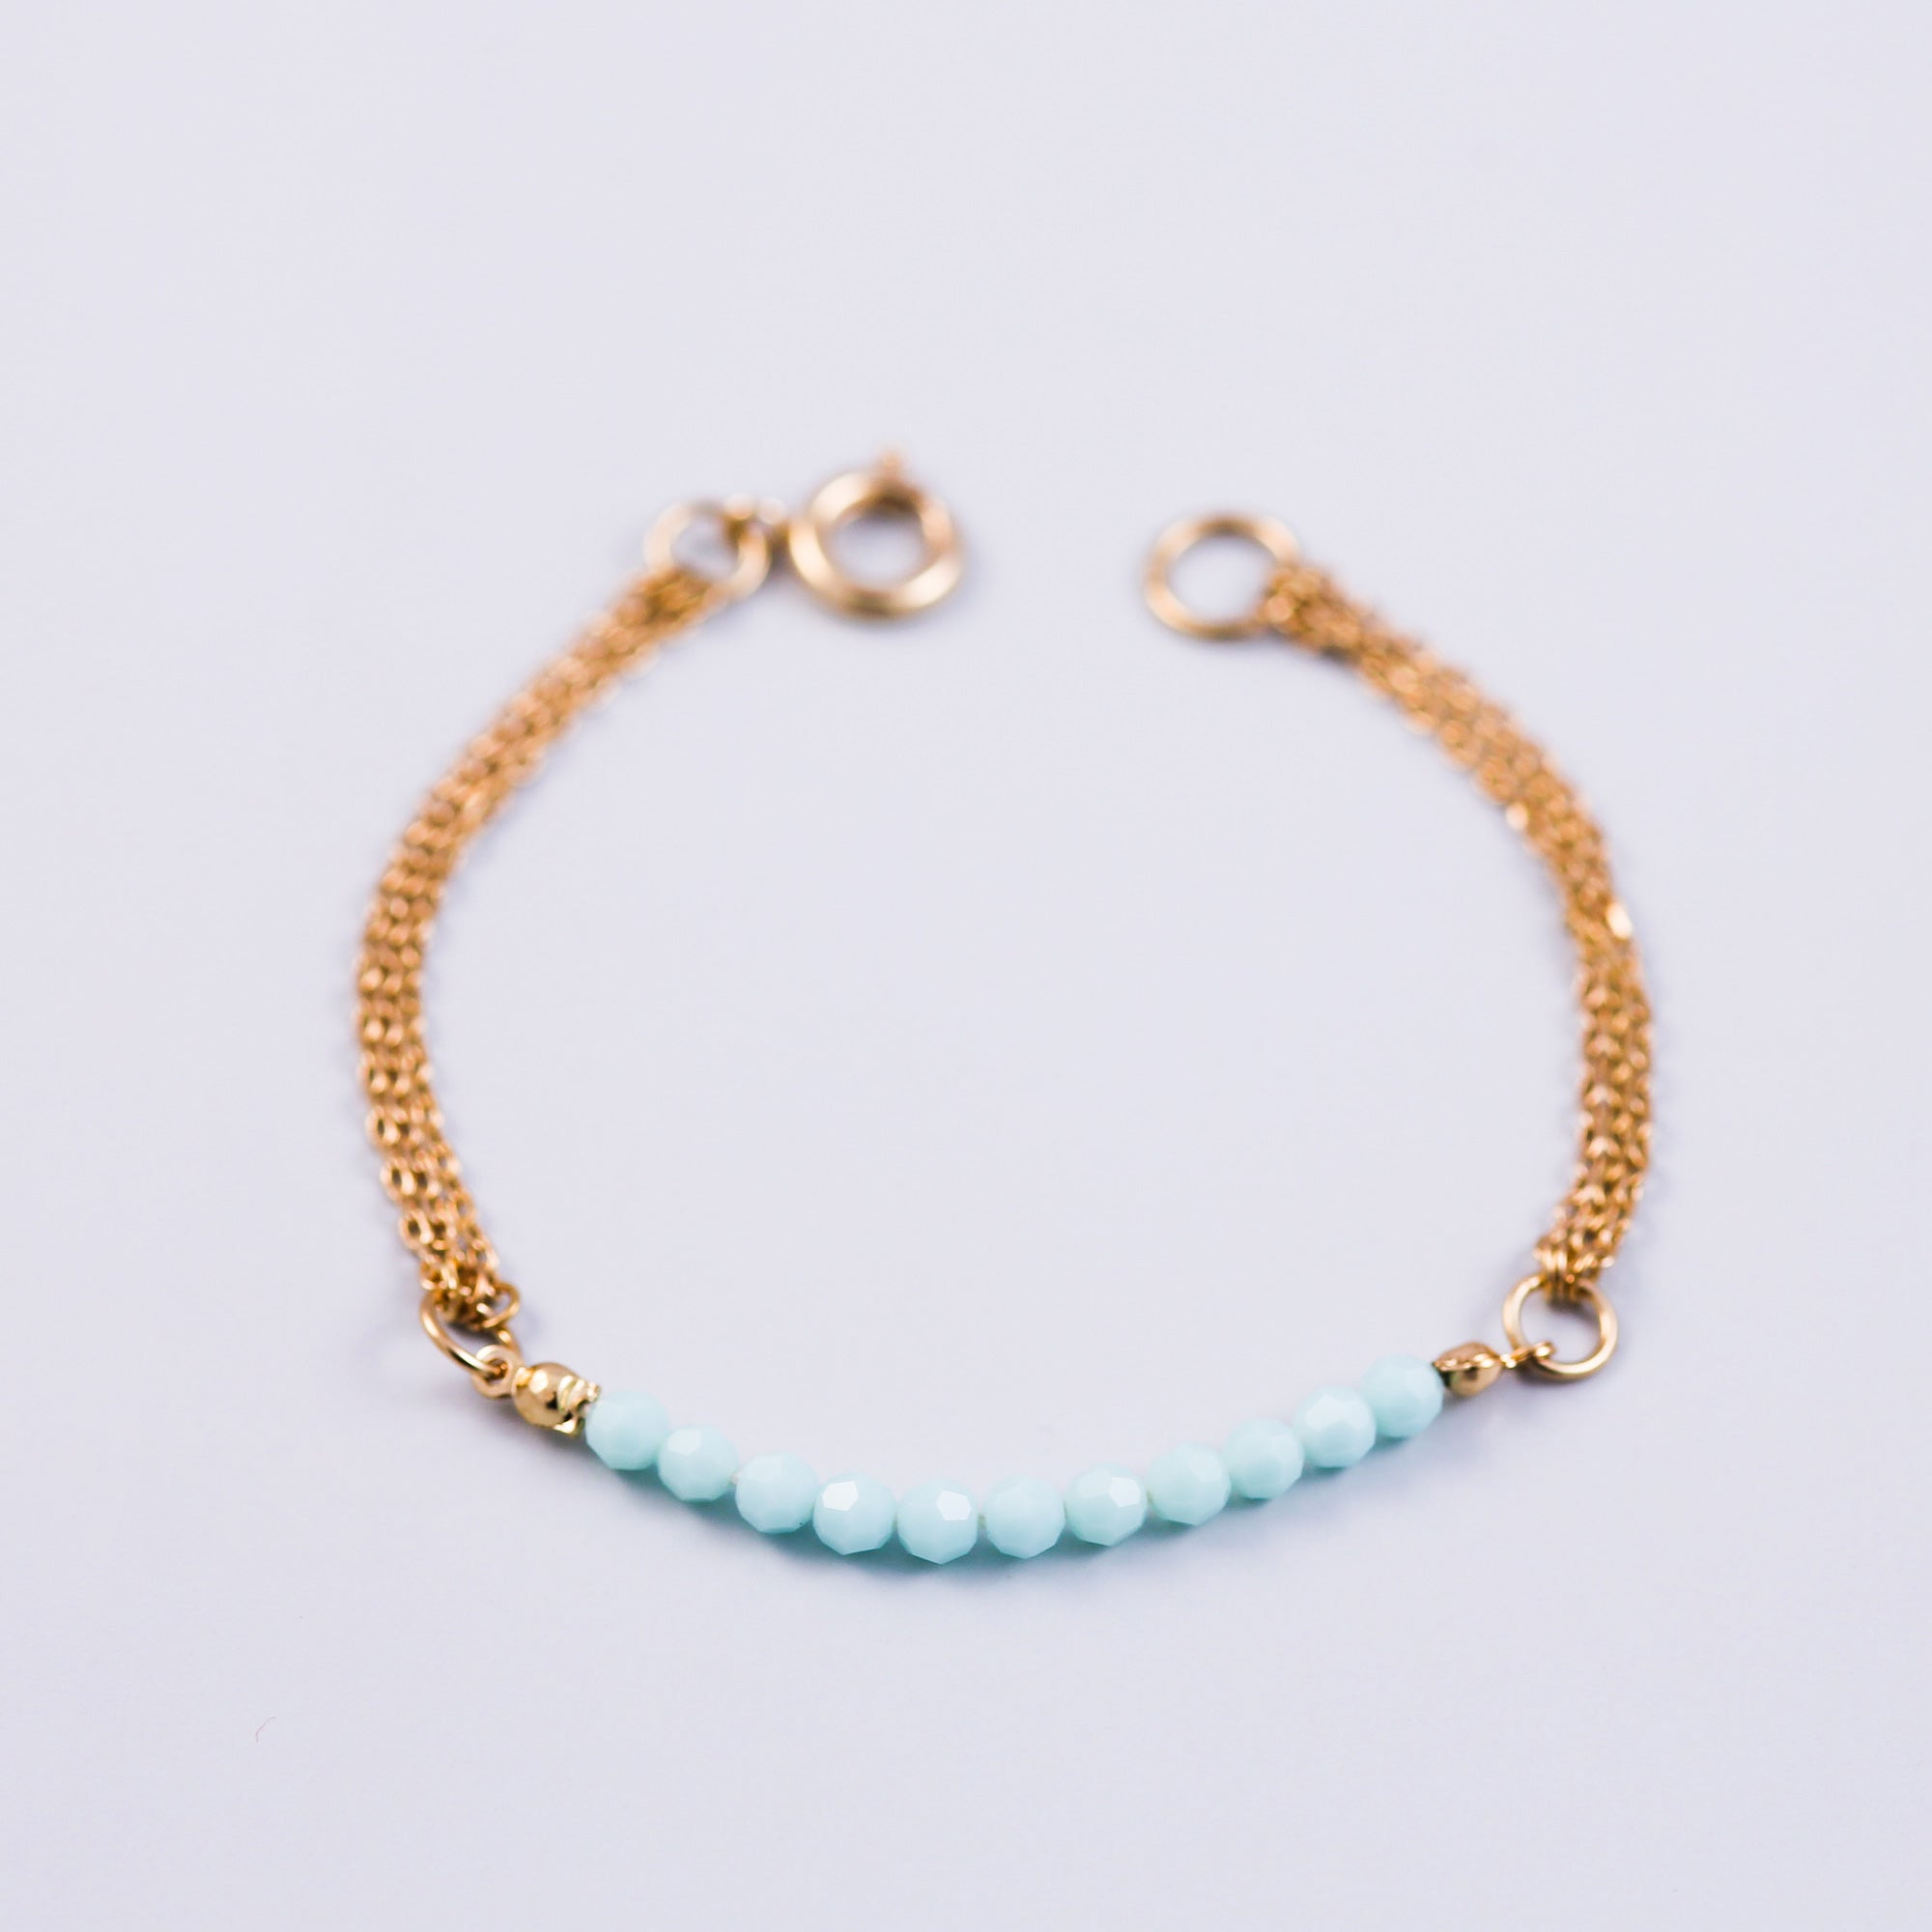 Beaded Bracelet | Cute Friendship Bracelets | Friendship Jewellery | Gold & Mint Alabaster